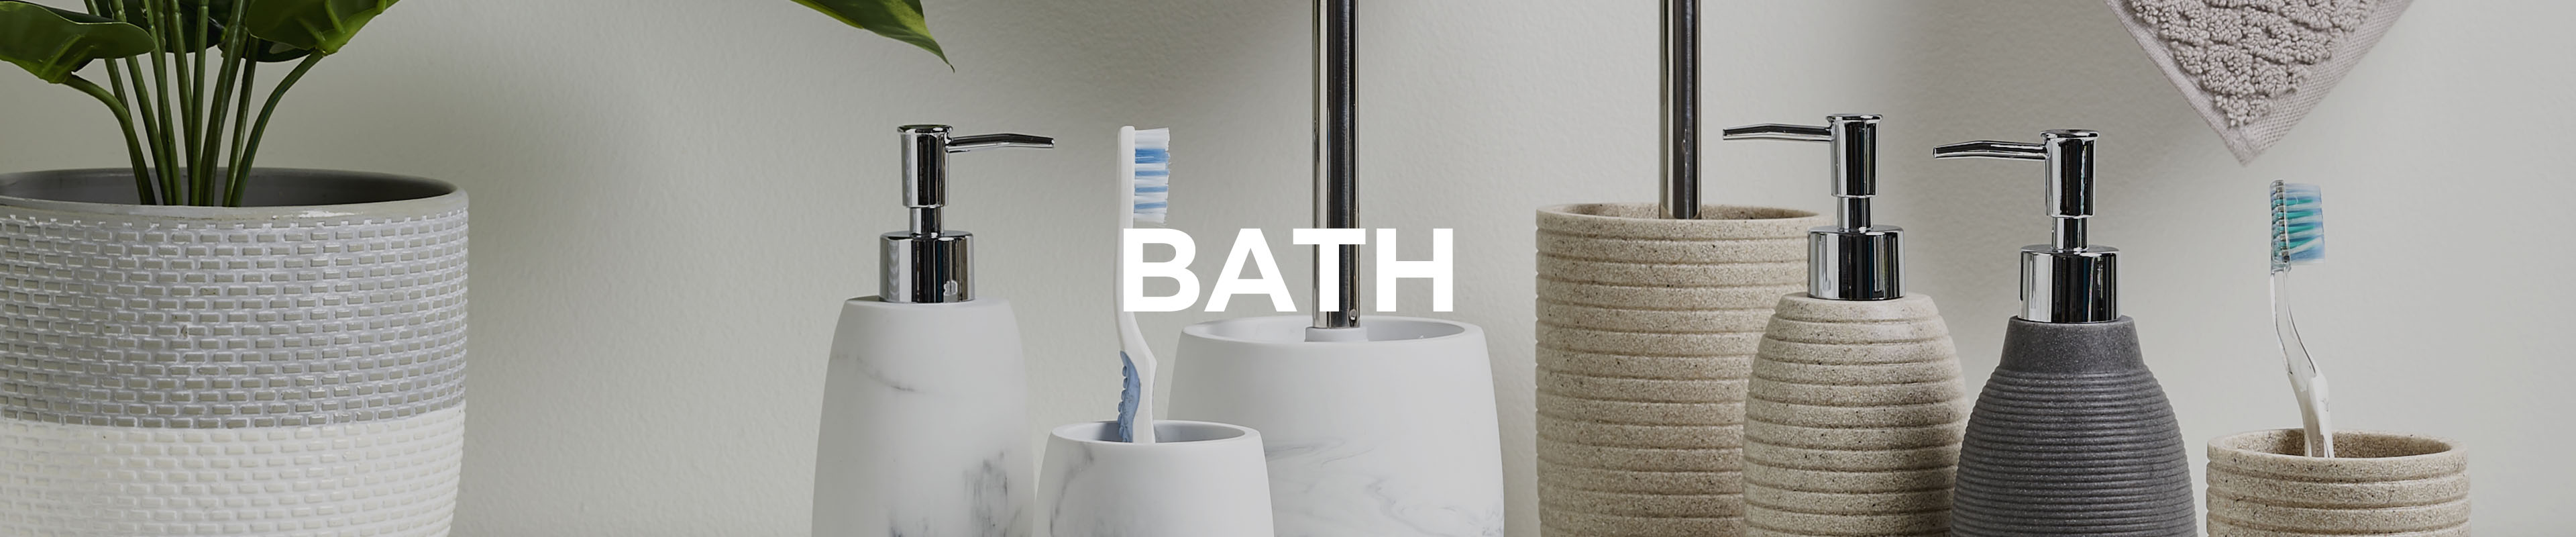 Shop Our Bath Range